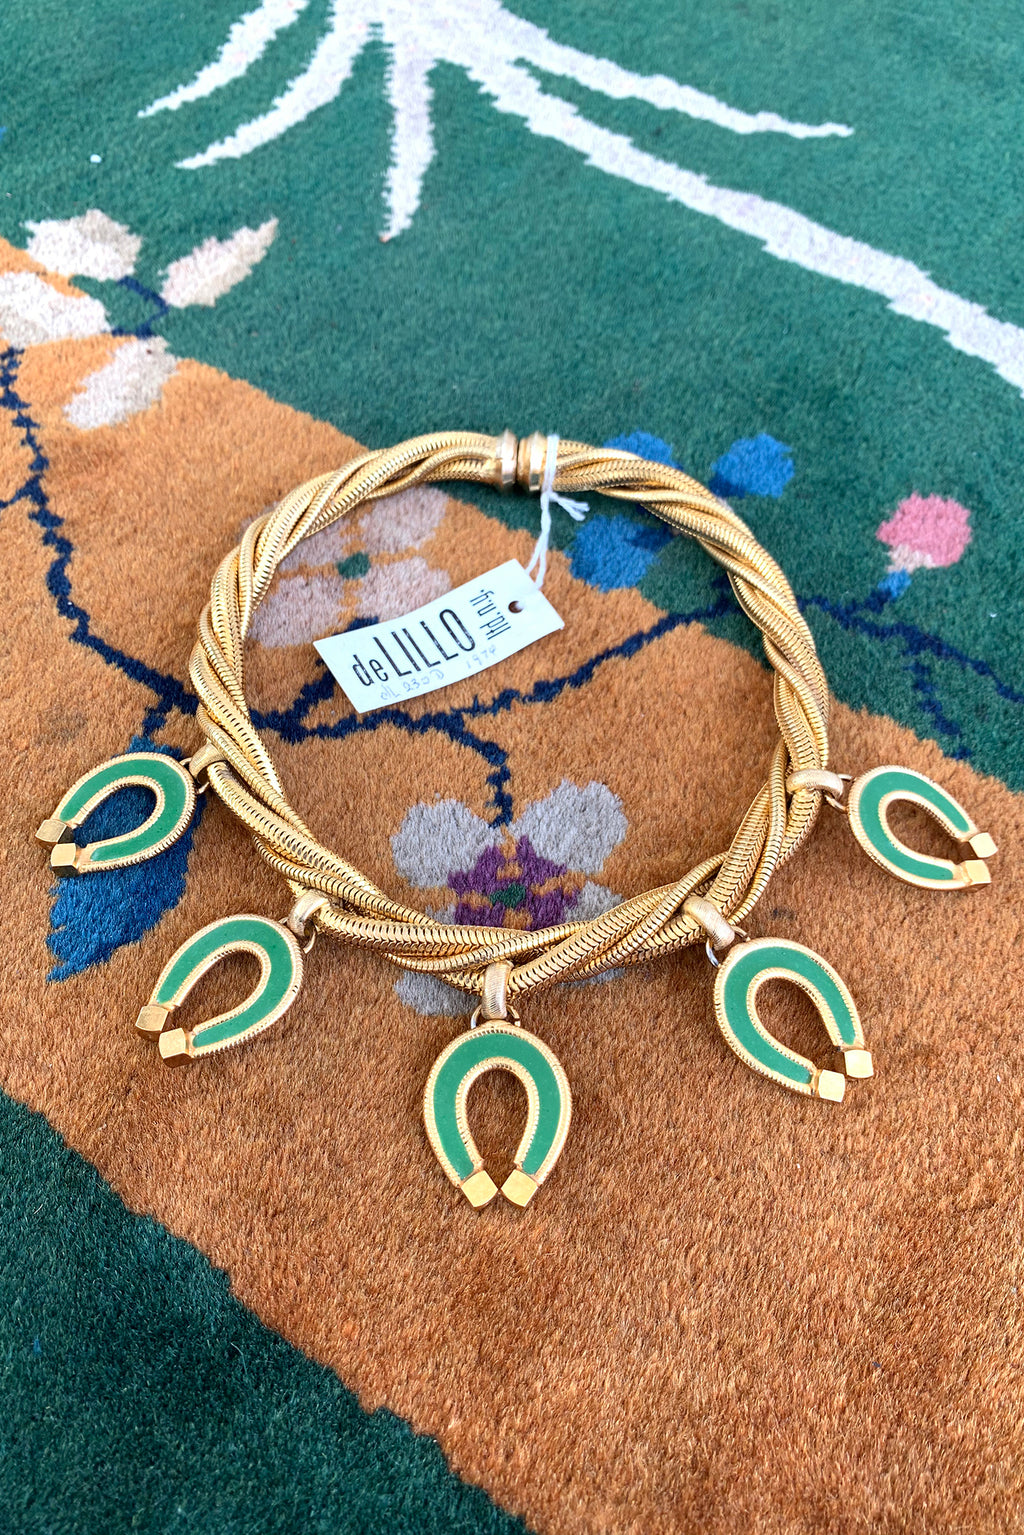 Vintage William de Lillo Lucky Horseshoe Charm Collar Necklace at Recess Los Angeles